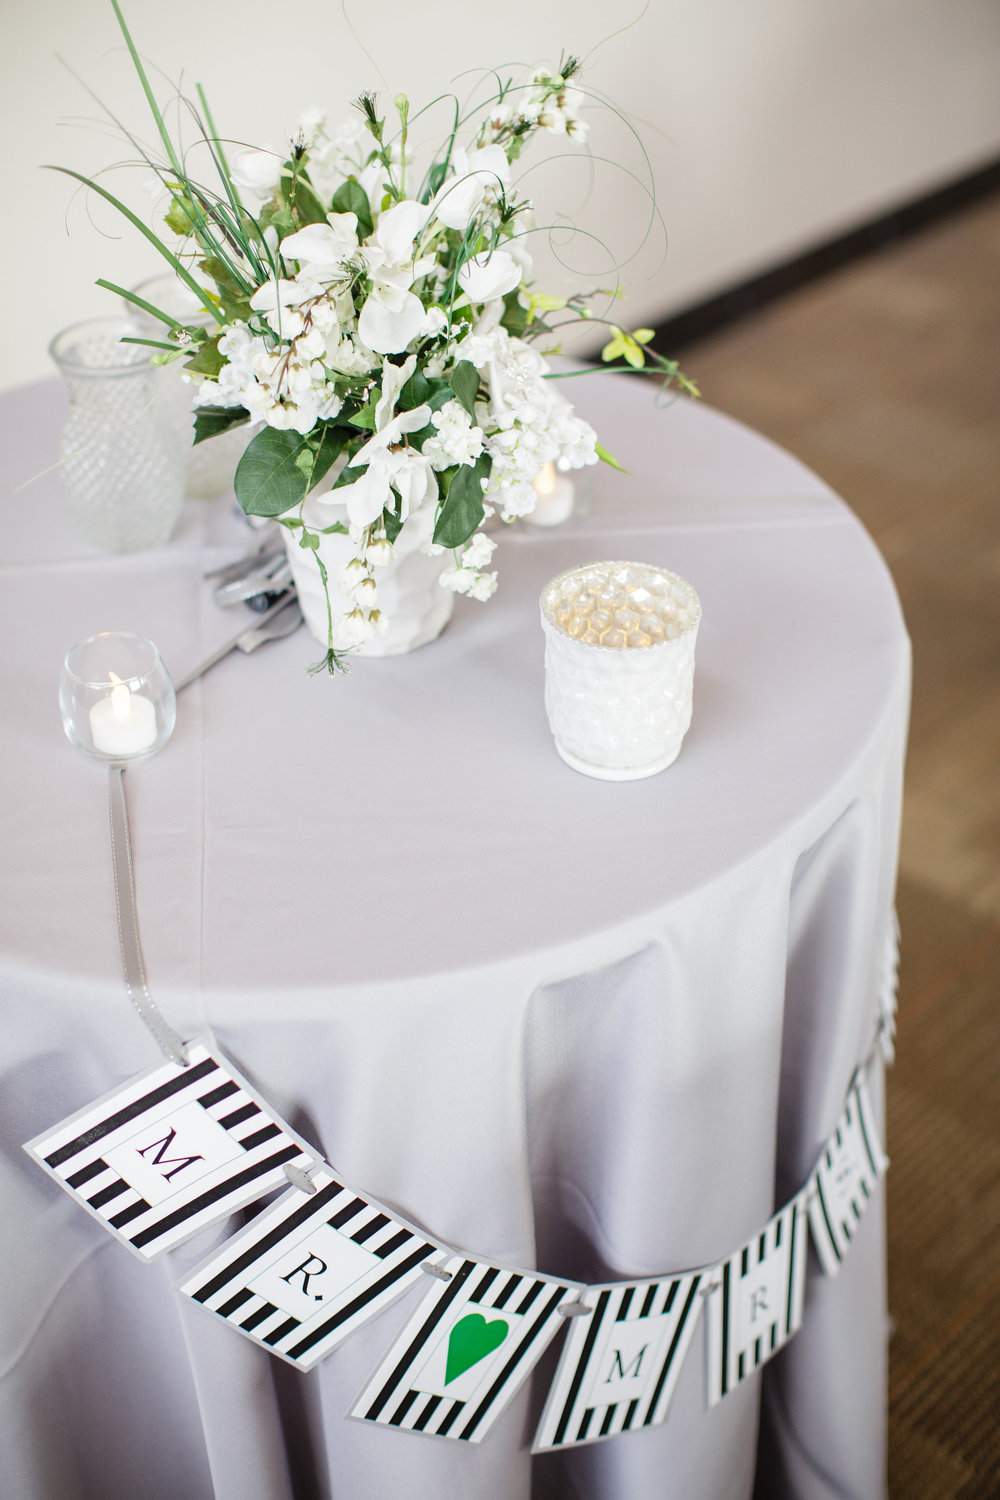 omaha-venue-the-living-room-white-black-downtown-wedding-centerpiece-white-gray-green